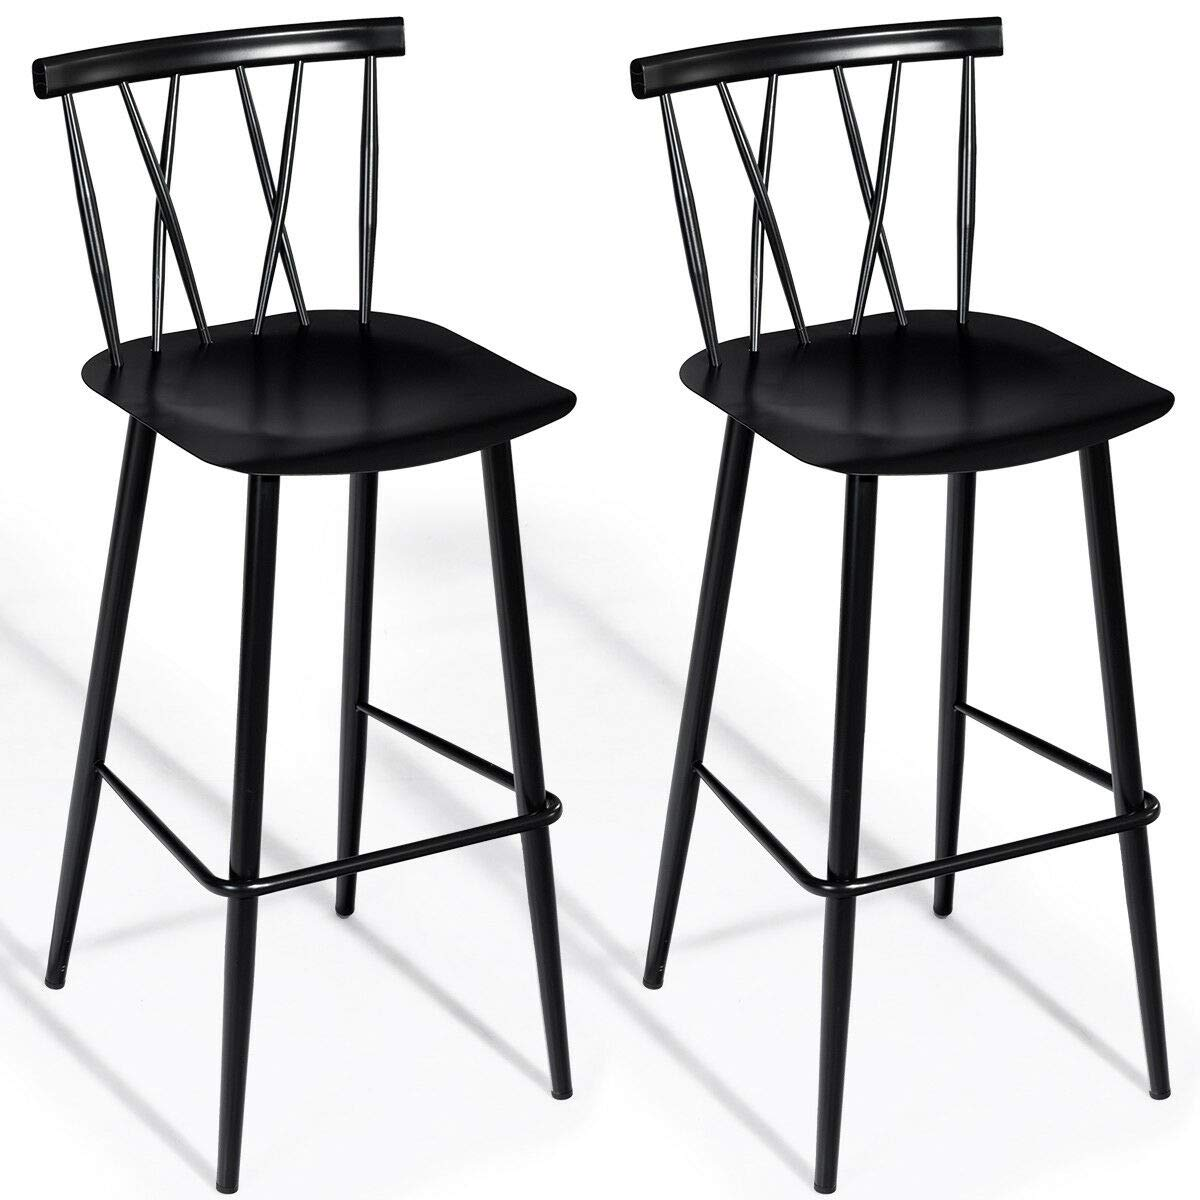 COSTWAY Dining Chair, Chic Bistro Cafe Side Chair Side Chair for Indoor, Modern Metal Chair with Backrest Bar Chair with Sturdy Metal Construction Cafe Chair Barstool Set of 2 Height 29.5